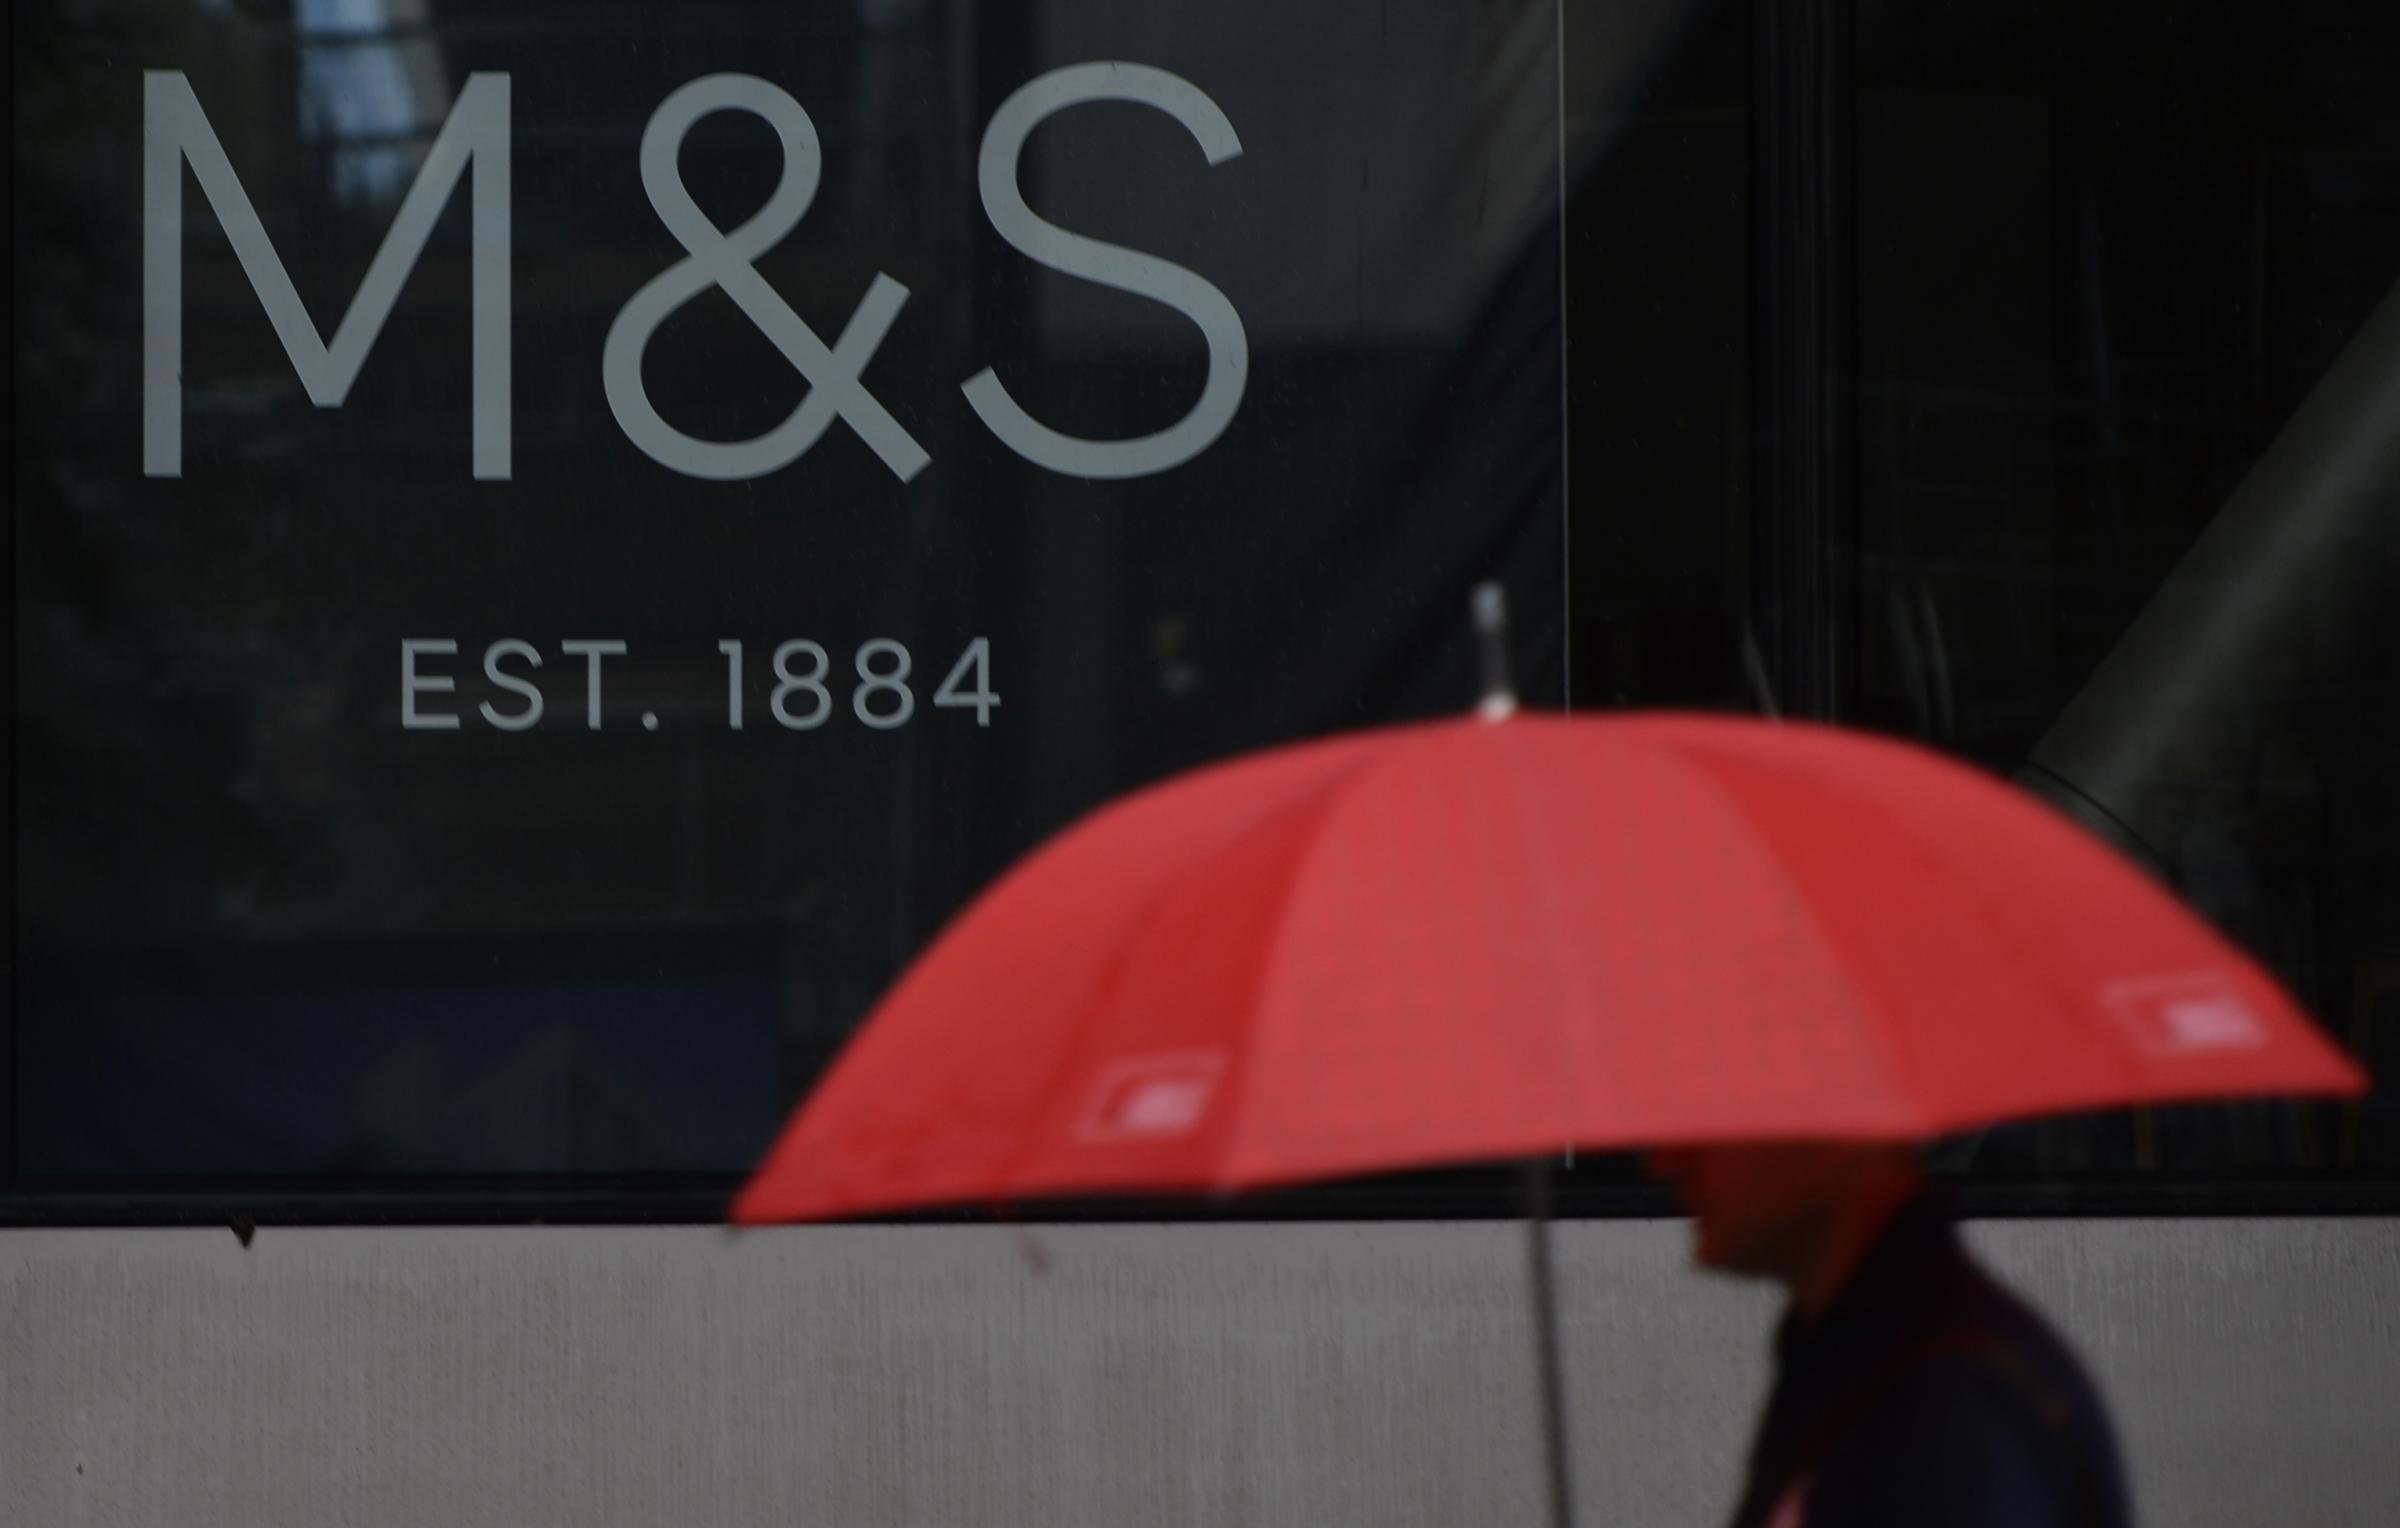 Marks & Spencer staff brace themselves as annual results expected to show fall in sales and profits. Picture: PA